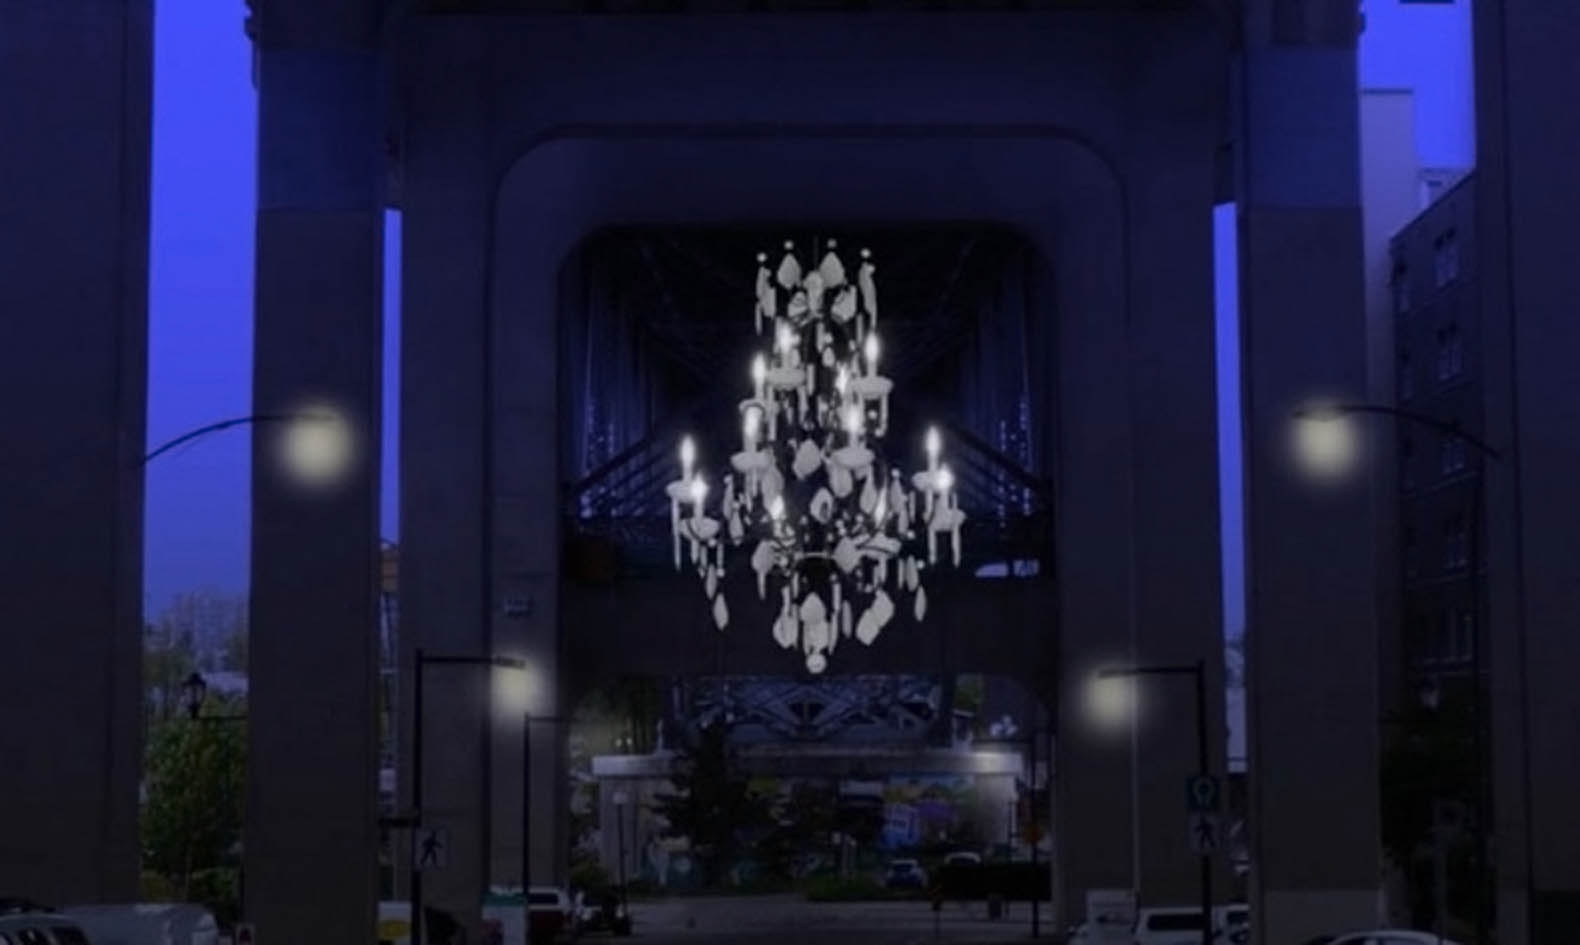 Vancouver Lights Up A Dark Highway Overpass With A Massive With Massive Chandelier (#12 of 12)